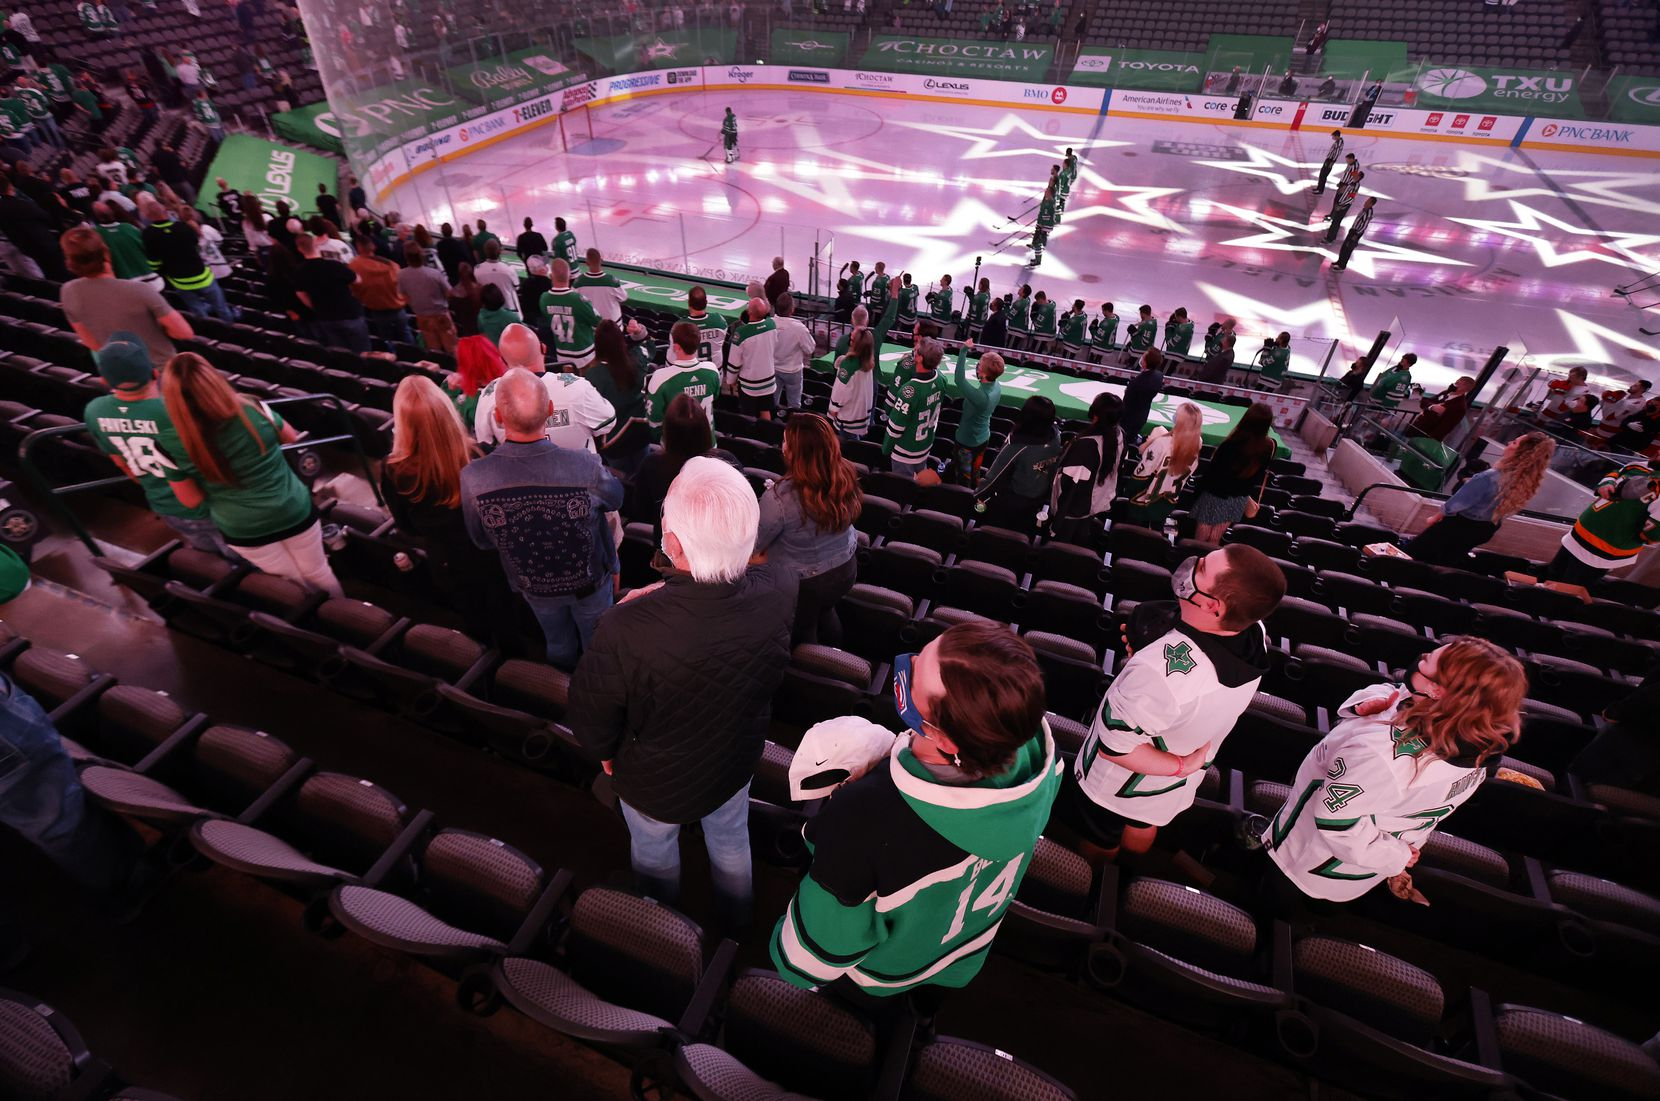 Dallas Stars fans stand for the national anthem during the last home game of the regular season at American Airlines Center on April 27.